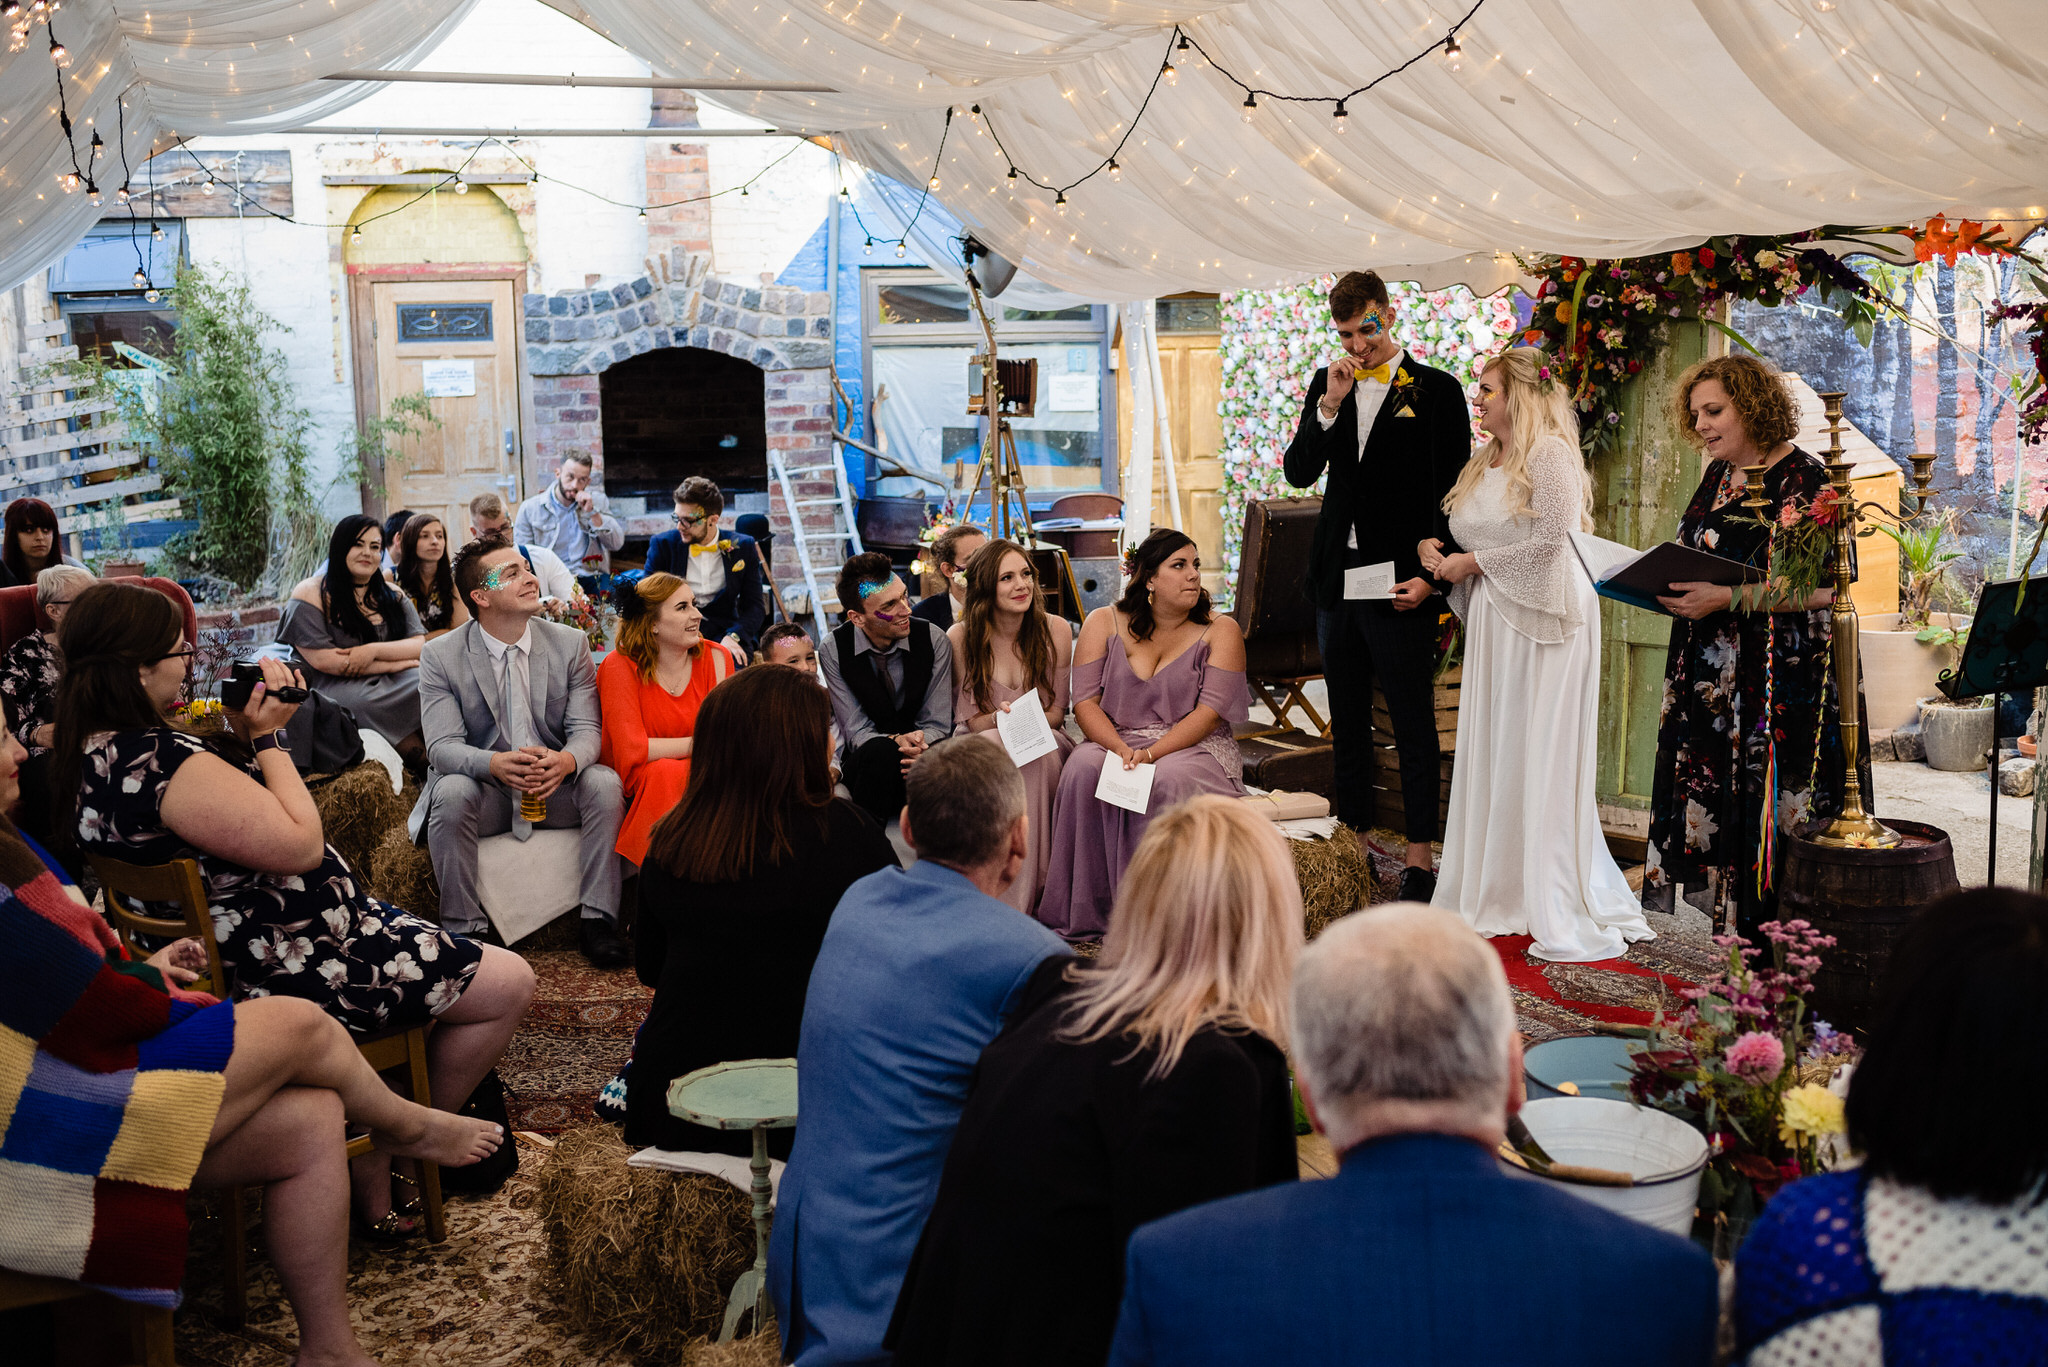 Hagglers corner sheffield wedding by simon biffen 55